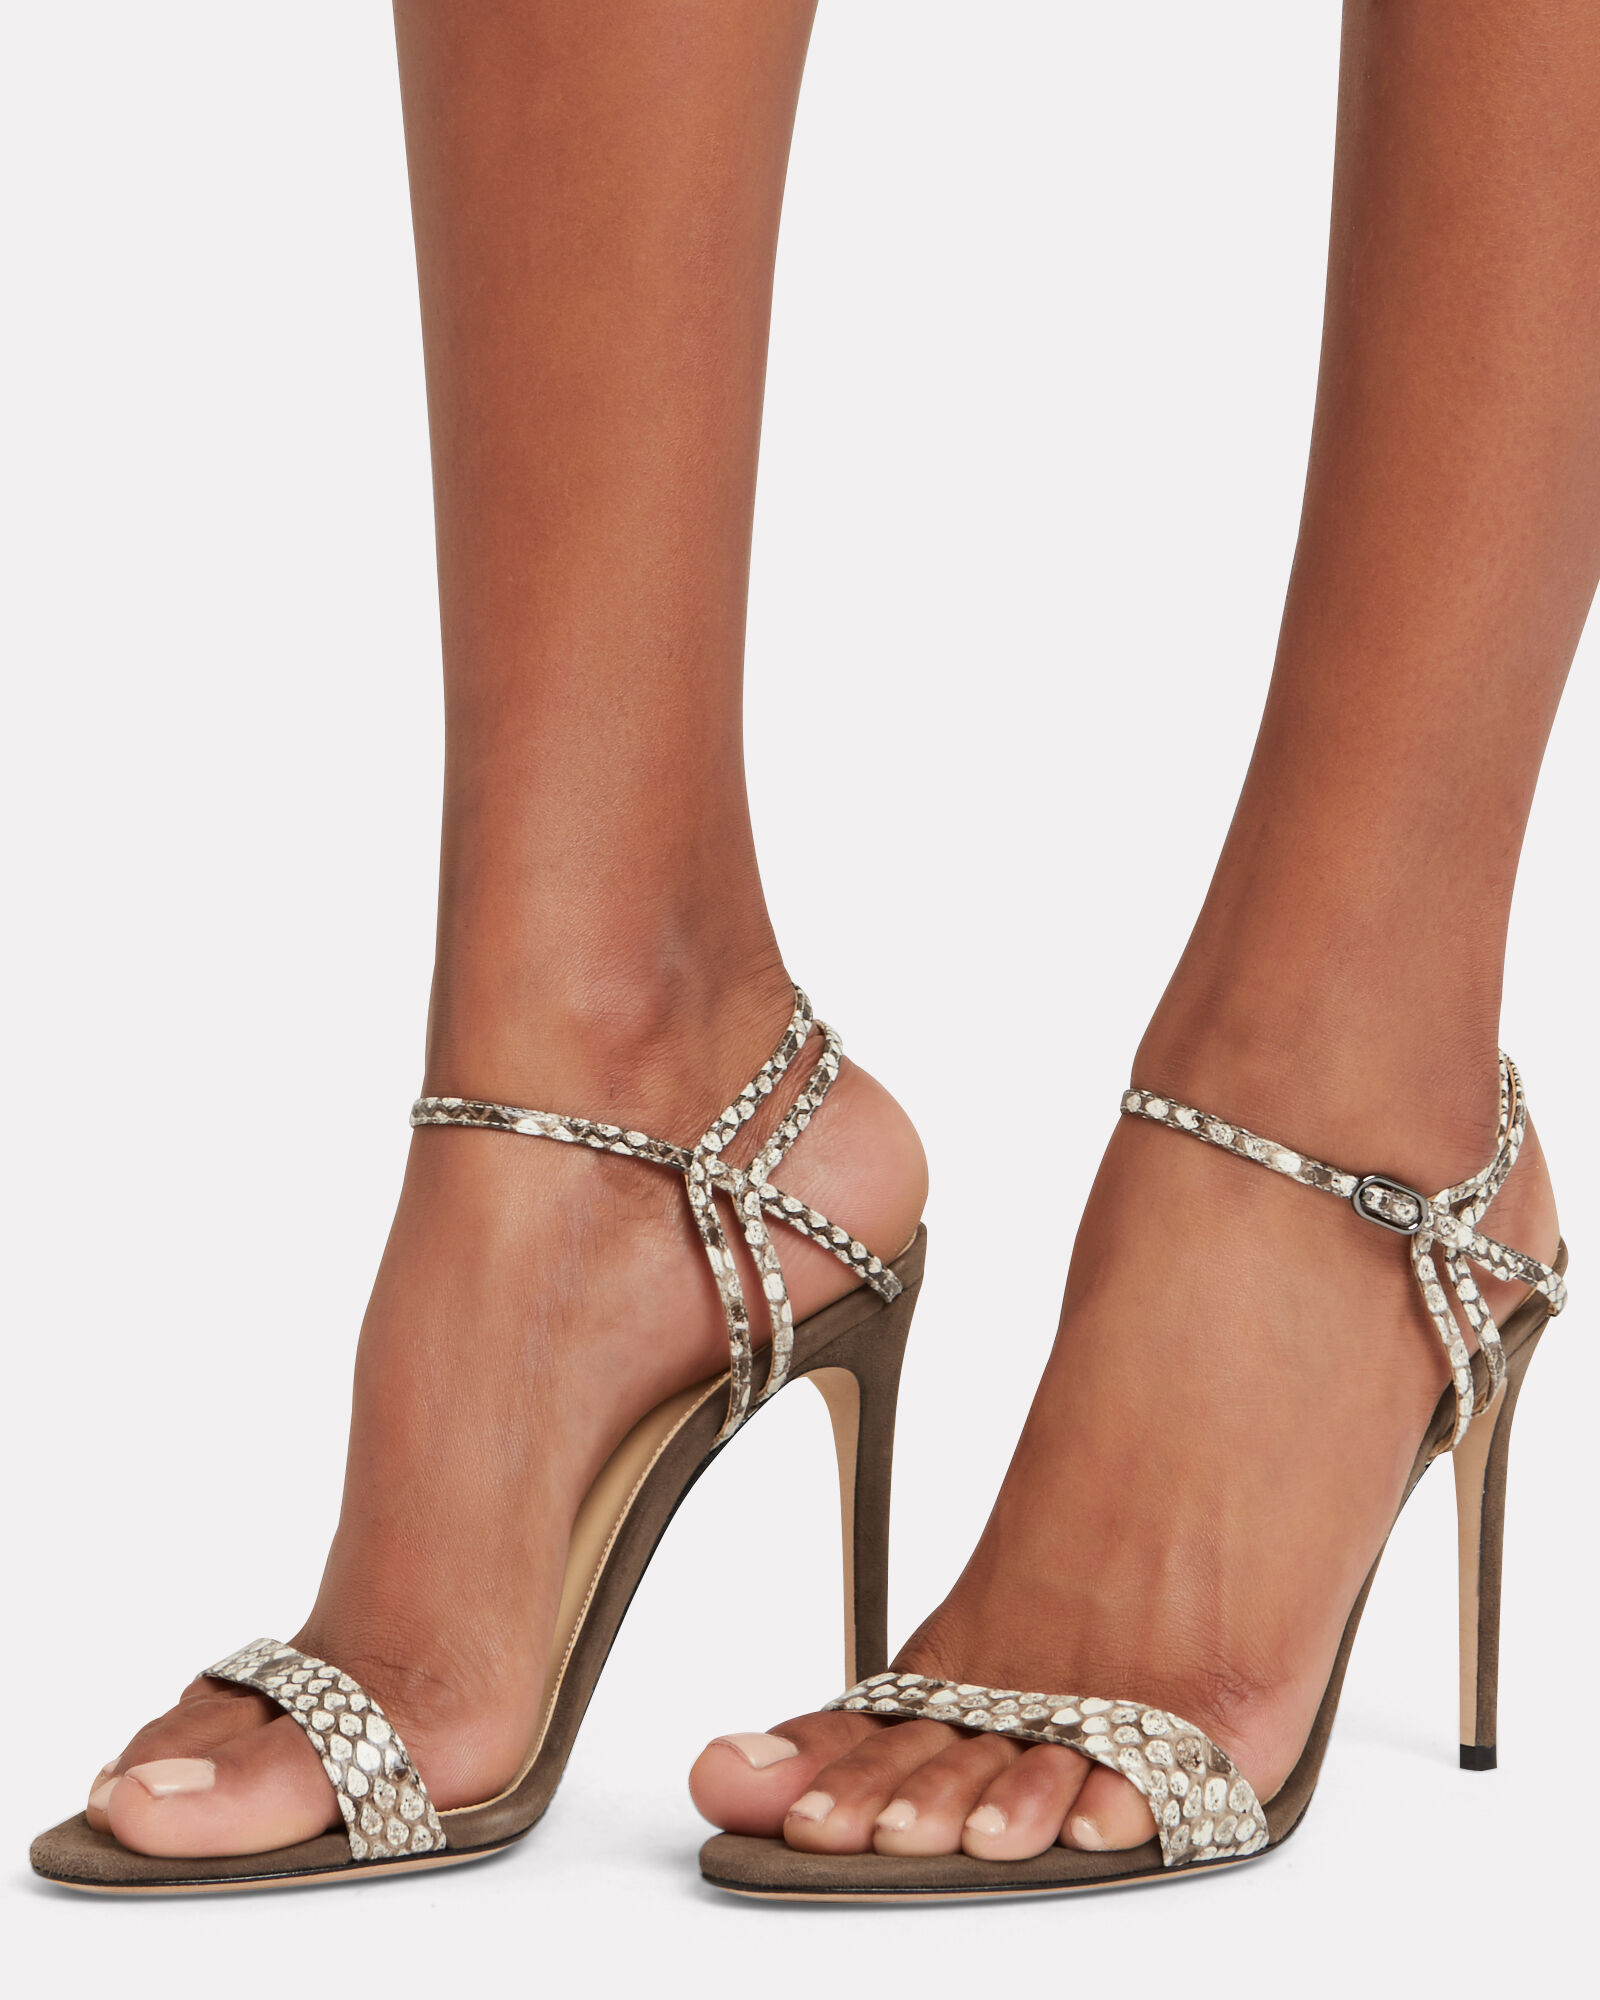 Sirena 100 Python-Embossed Sandals, GREY, hi-res